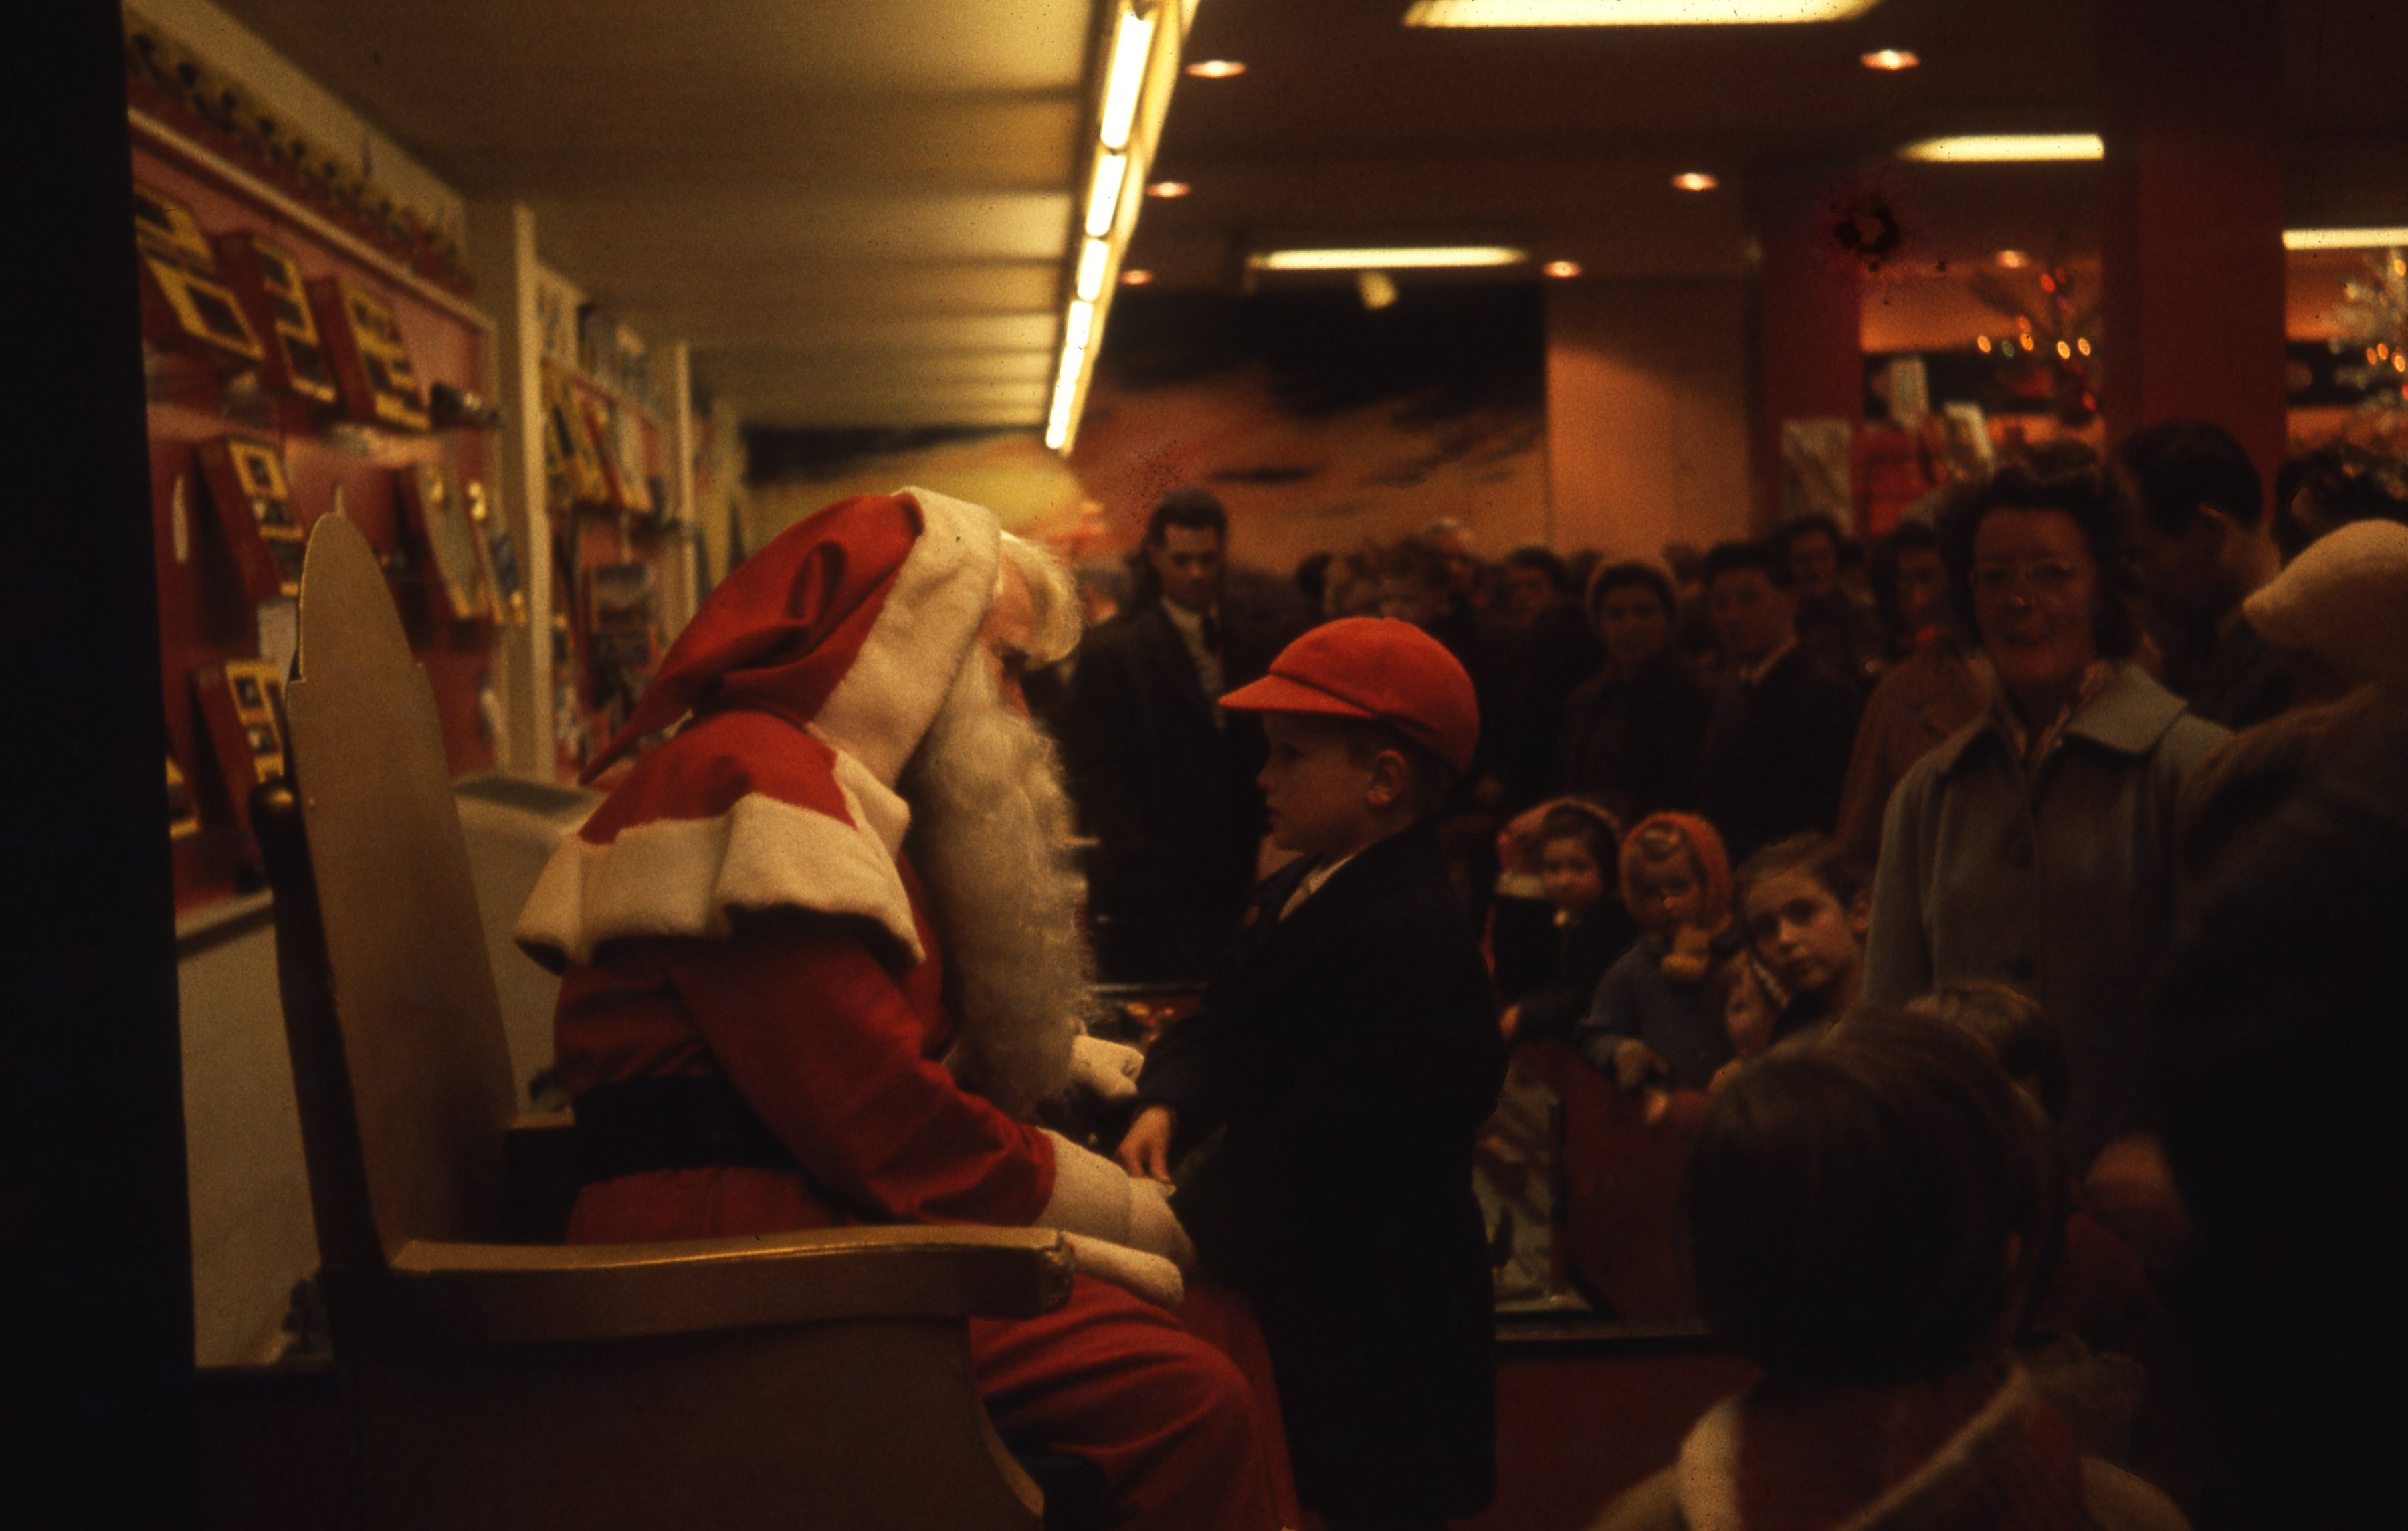 This photograph shows Santa's Grotto in the Fenwick department store in Newcastle upon Tyne. Children and their parents wait to meet Father Christmas. This is a 35mm slide. It was taken in 1962.